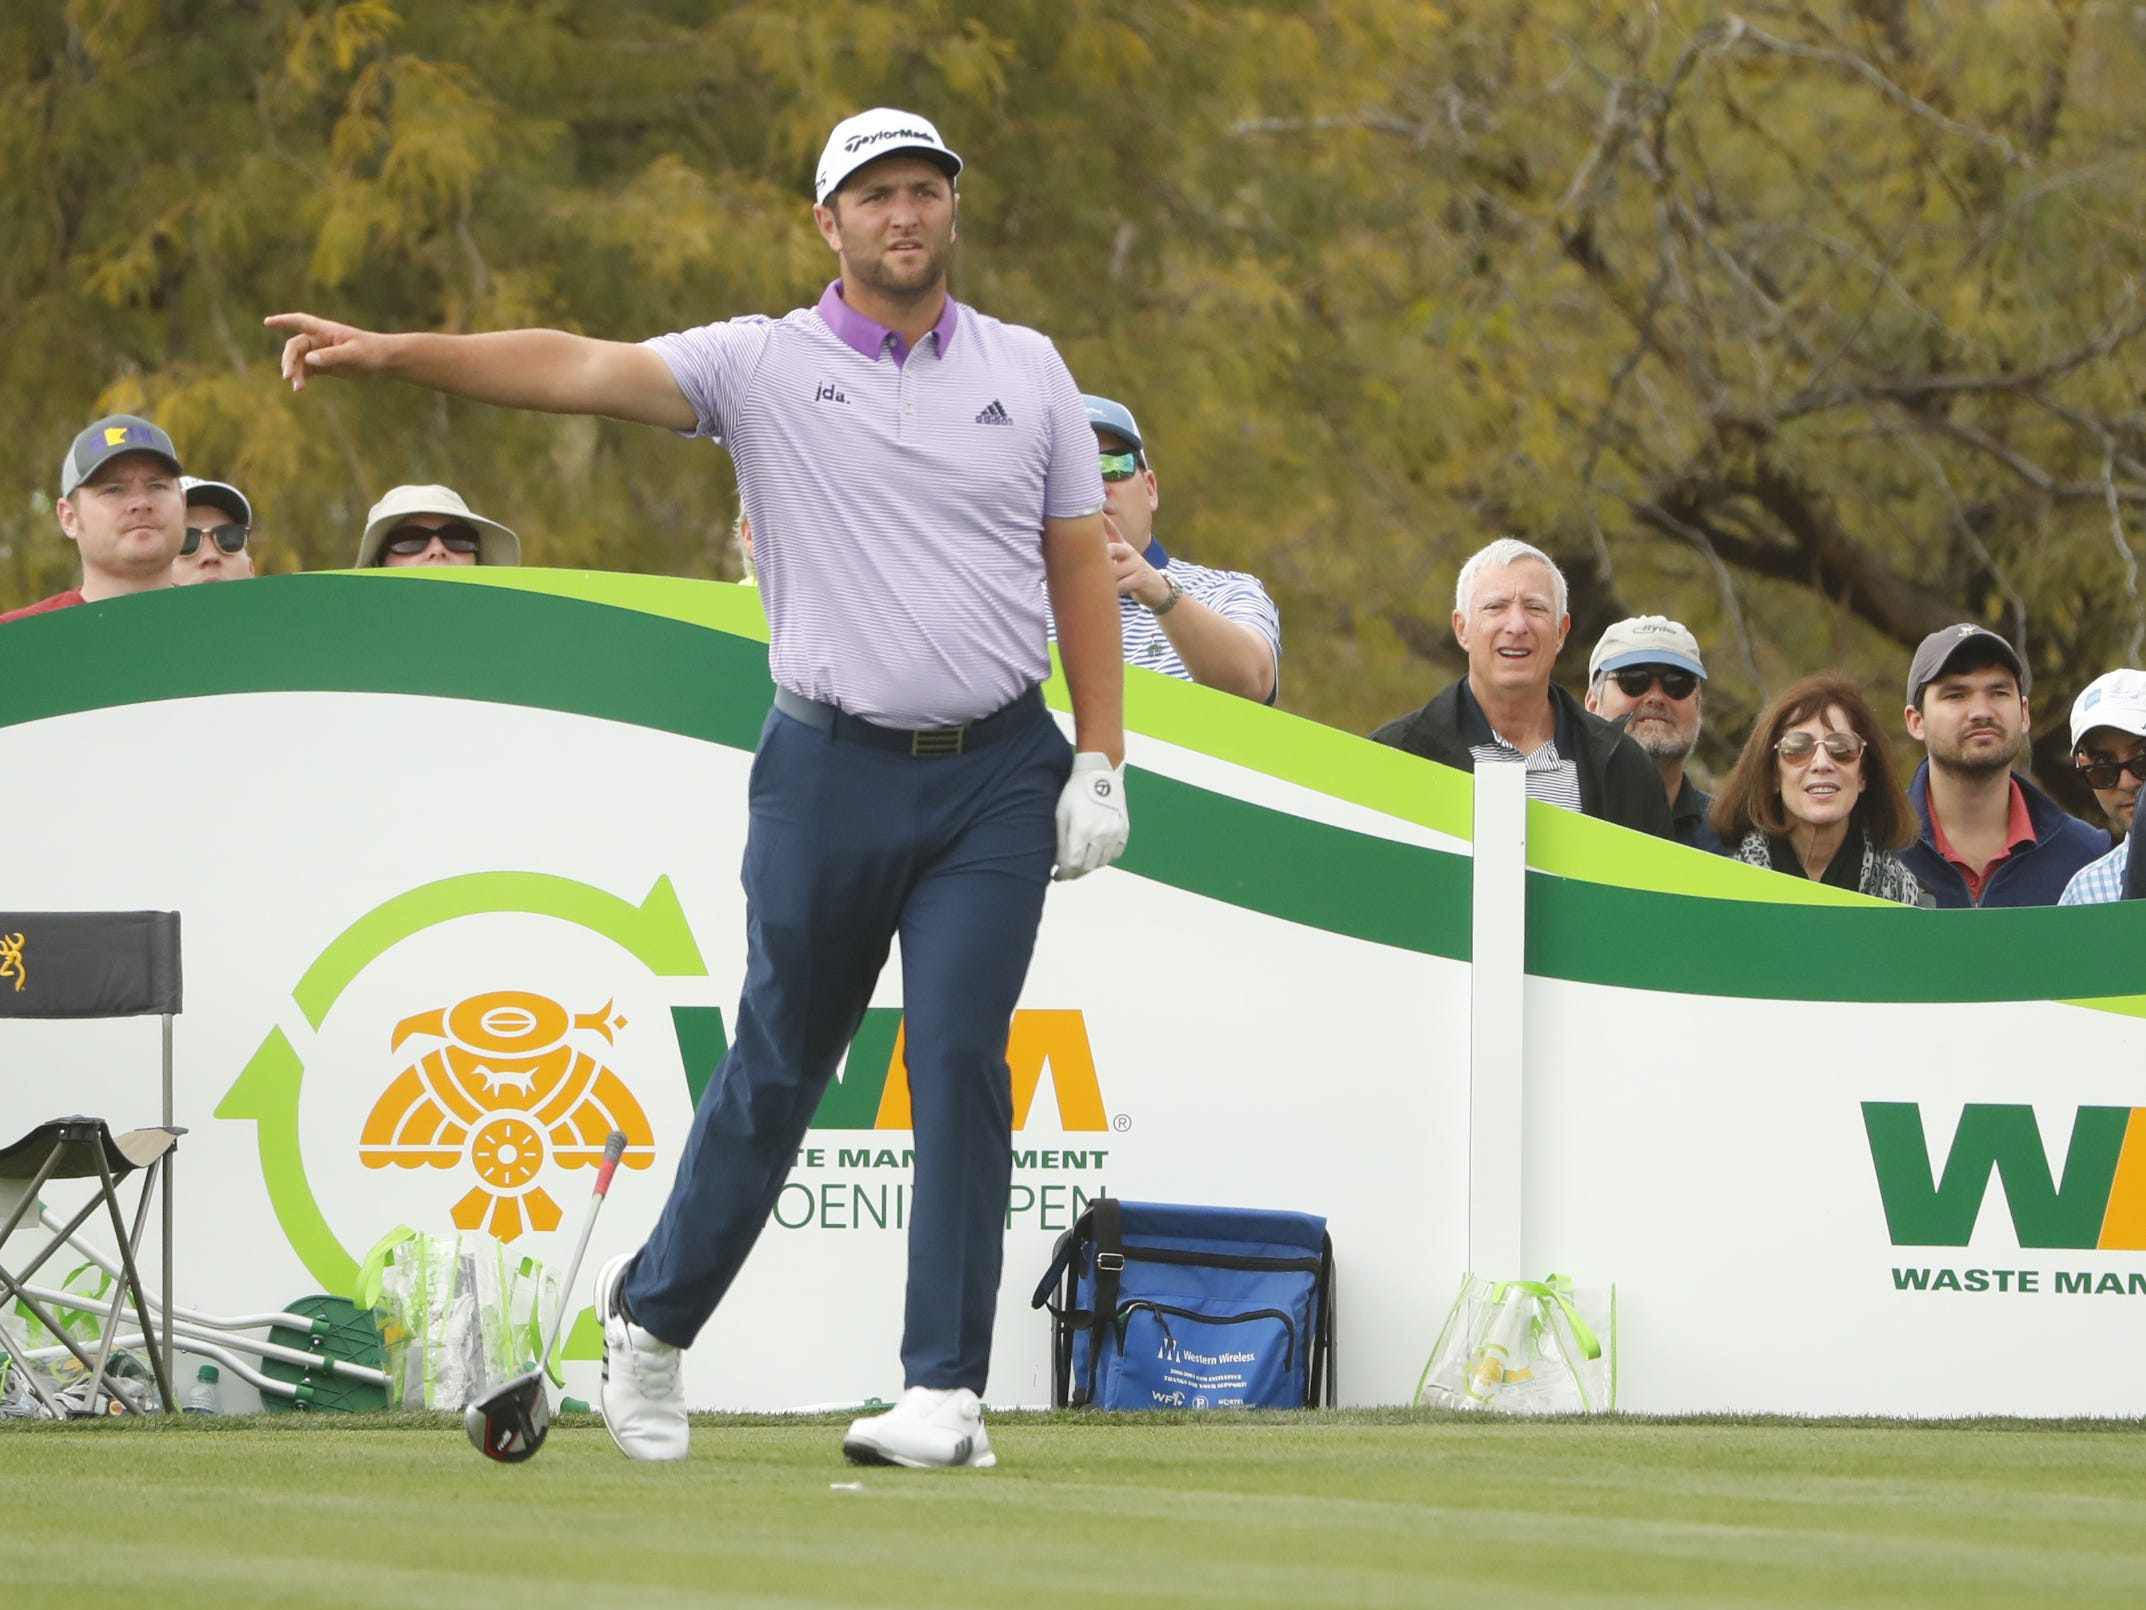 Jon Rahm points to his right after hitting from the tee box on the 8th hole during the third round of the Waste Management Phoenix Open at TPC Scottsdale in Scottsdale, Ariz. on February 2, 2019.